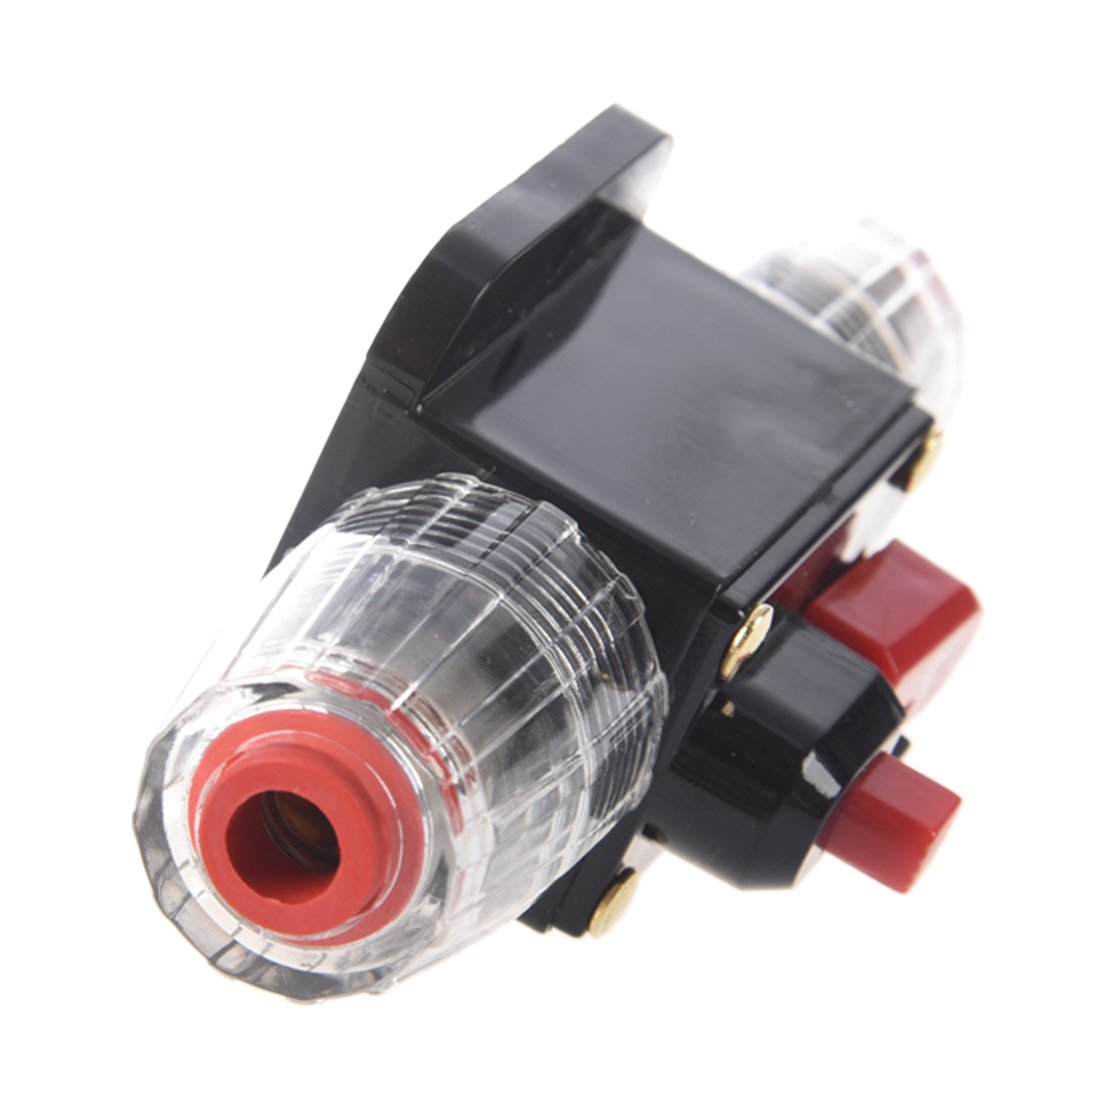 12V-24V DC 20A Car Audio Inline Circuit Breaker Reset Fuse Holder for Stereo Switch System Protection (20A)